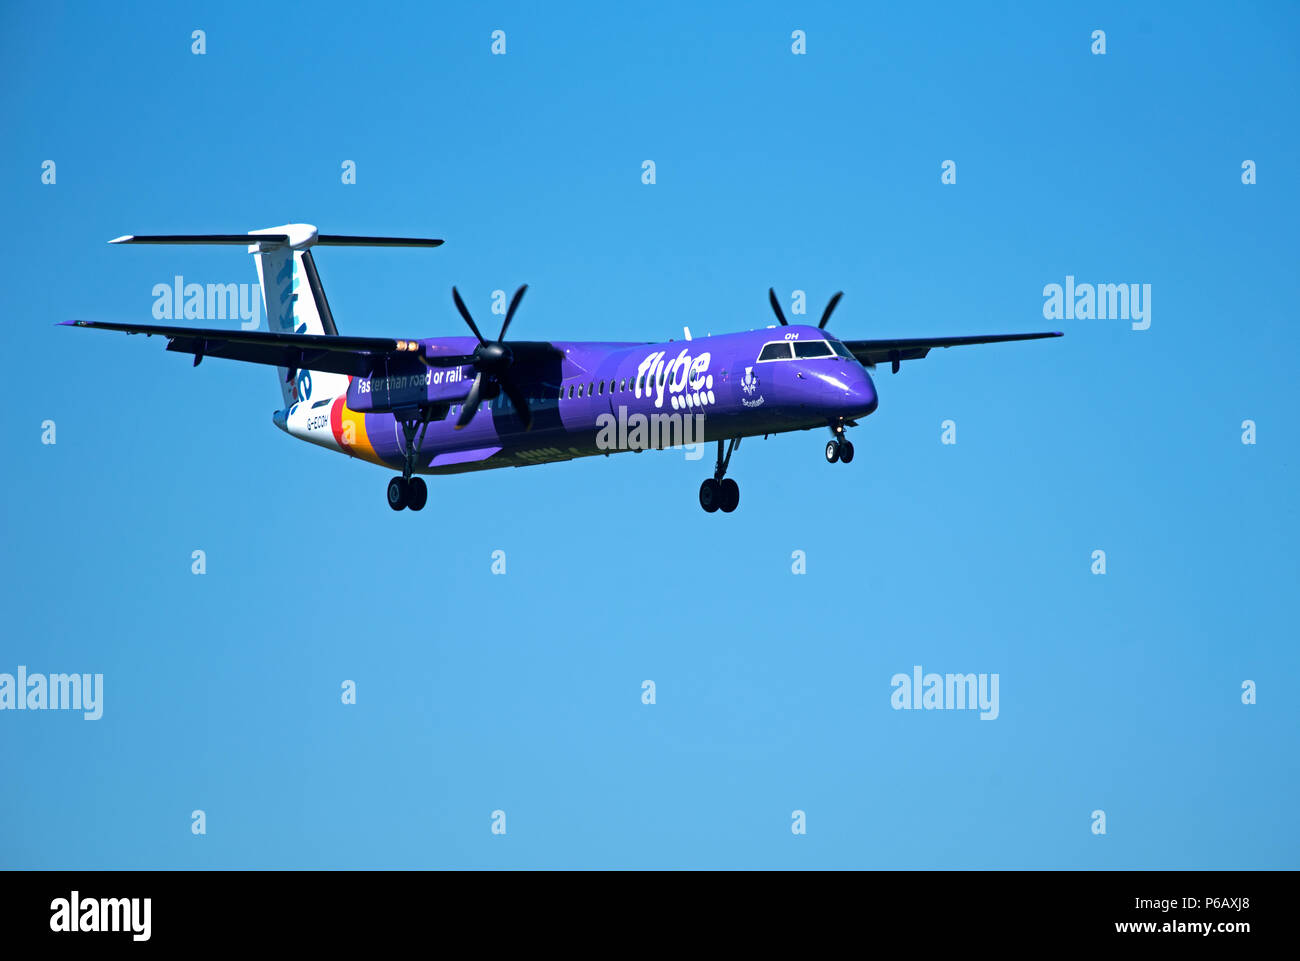 Flybe Dash 8 -400Q Passenger aircraftT approaching Inverness airport in the Scottish Highlands ready for landing. Stock Photo